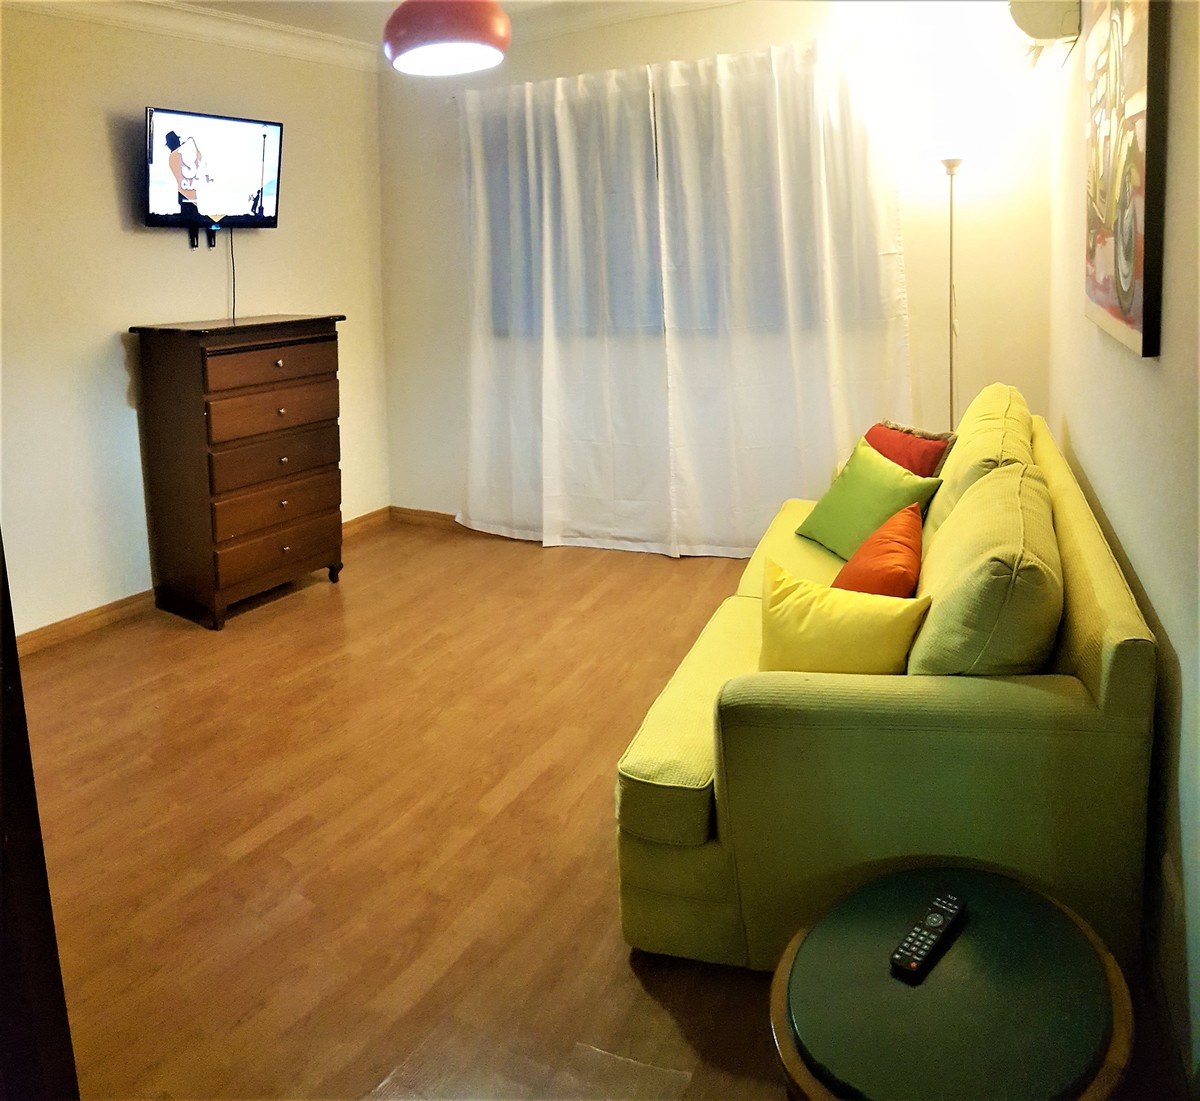 10 de 18: Habitación de estar con TV